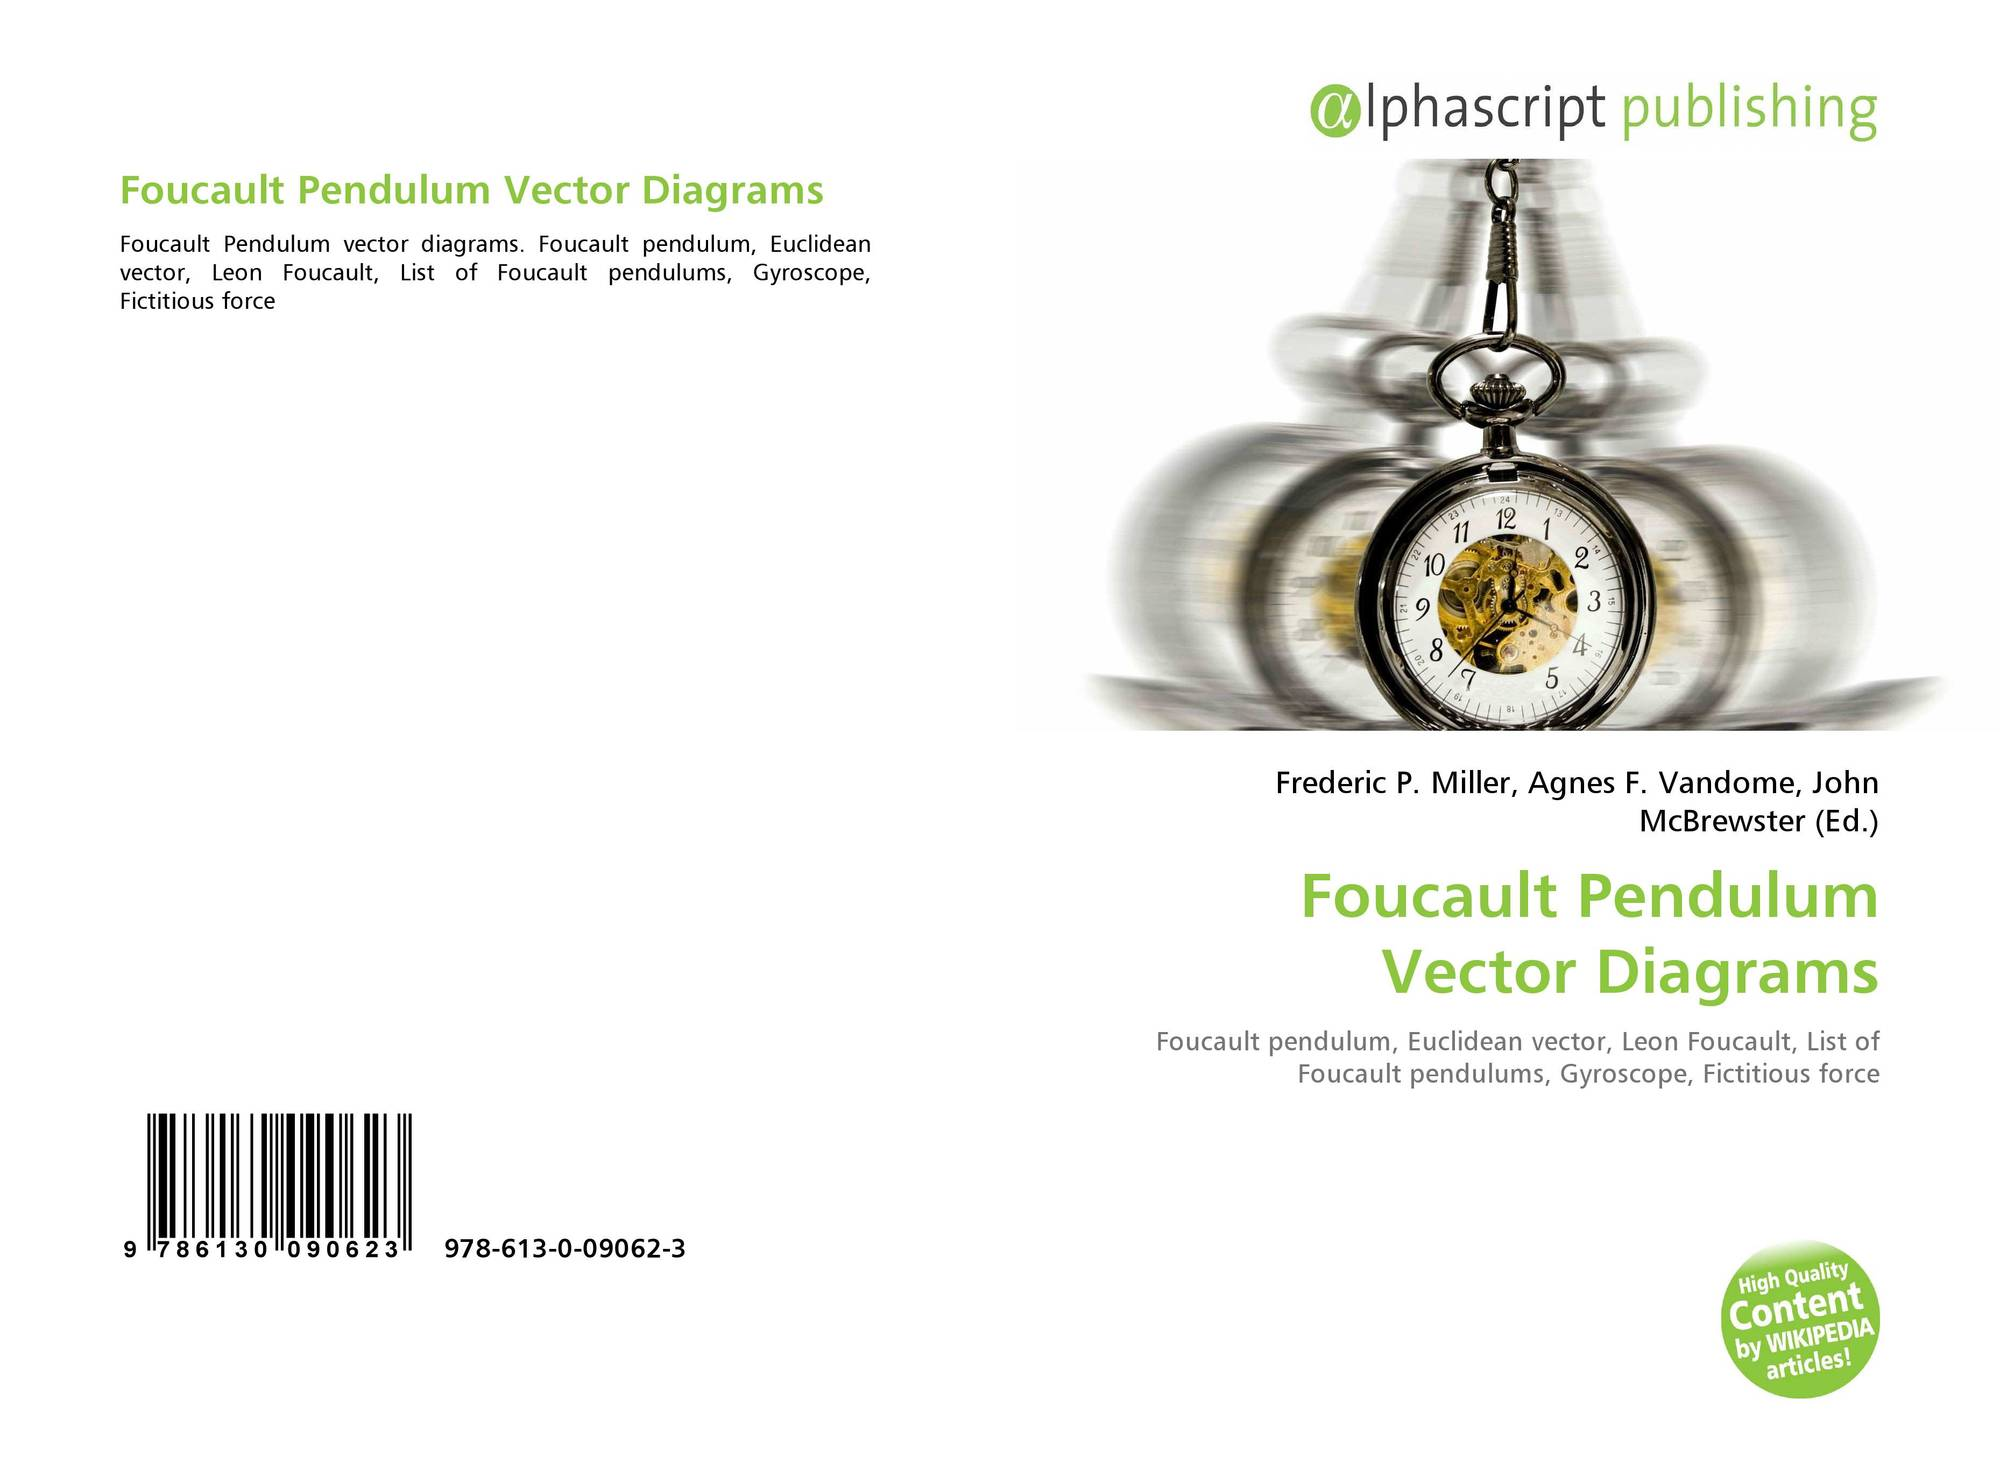 Foucault Pendulum Vector Diagrams 978 613 0 09062 3 6130090625 Force Bookcover Of 9786130090623